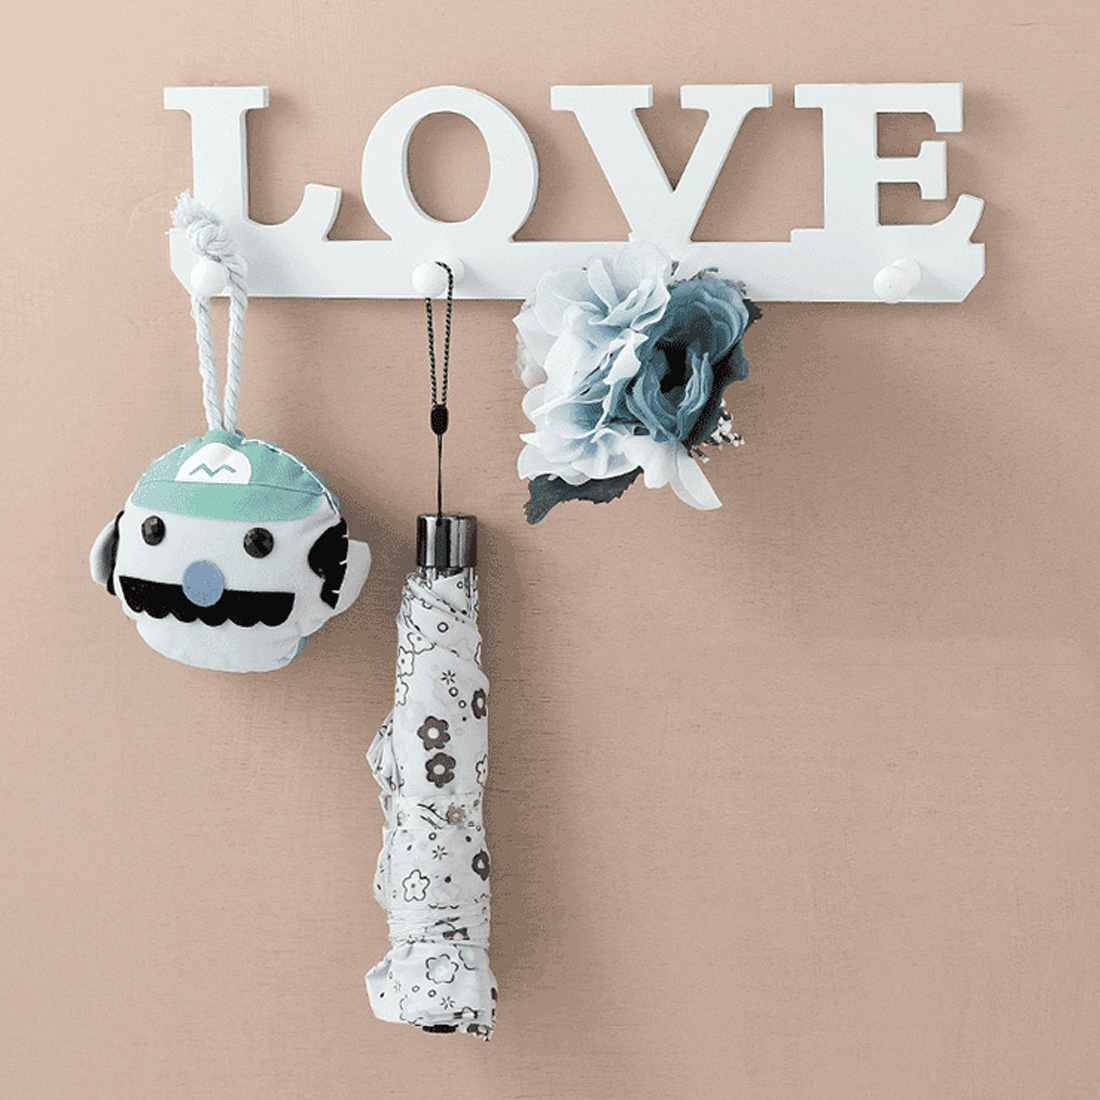 Wooden Love Coat Hat Key Holder 4 Hooks Clothes Bag Robe Mount Screw Wall Rack Door Bathroom Home Decor Hanger